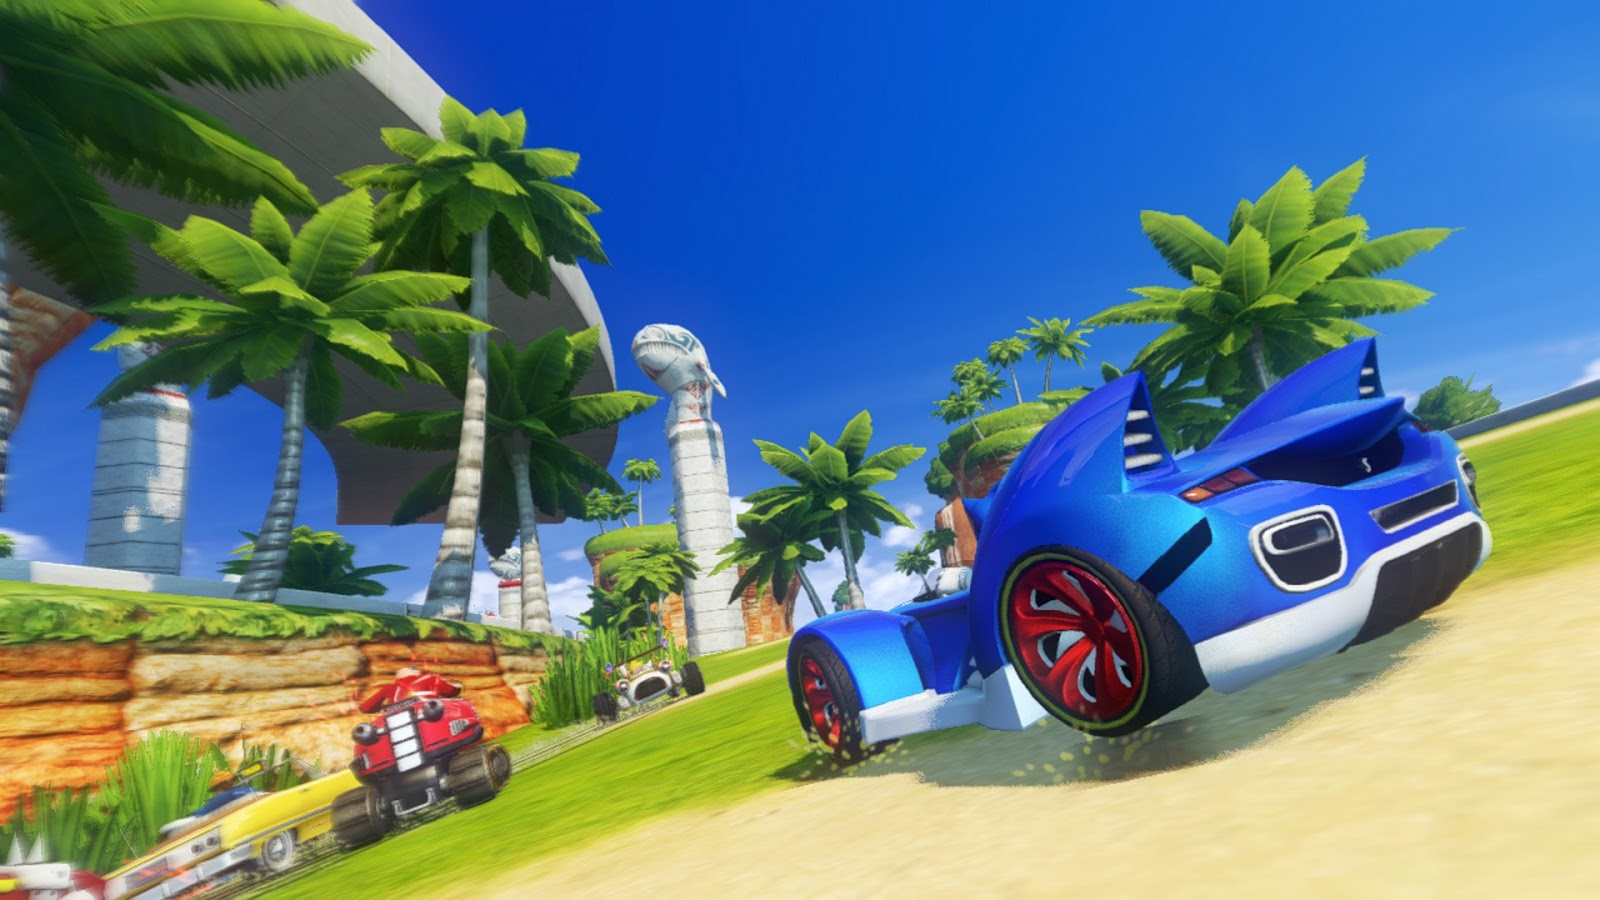 [Vie de Gamer] Sonic & all stars racing transformed Wii U